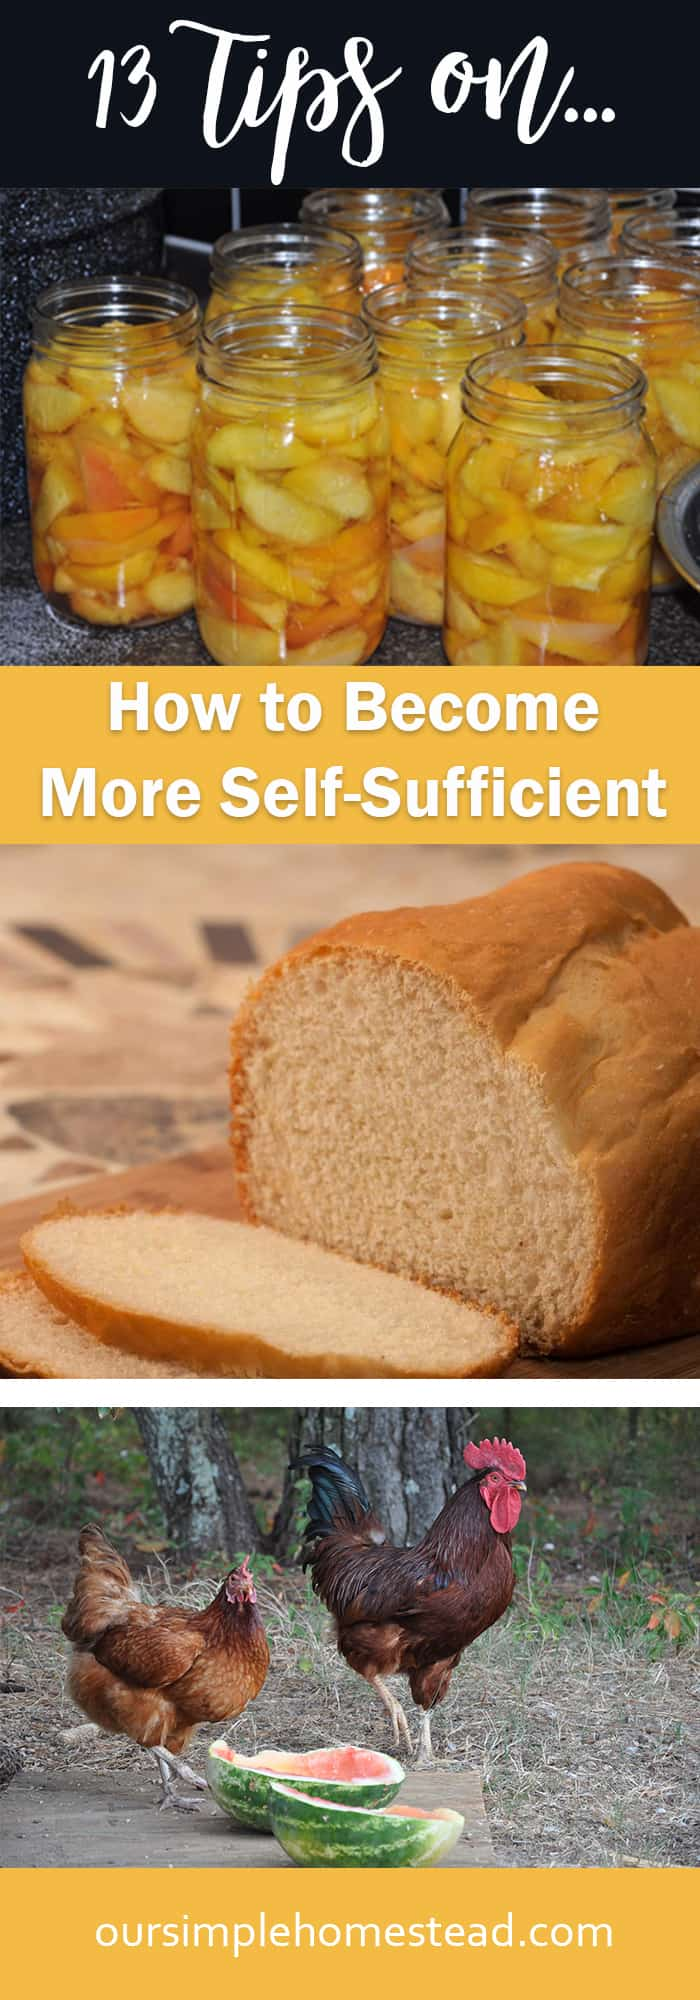 How to become more self-sufficient